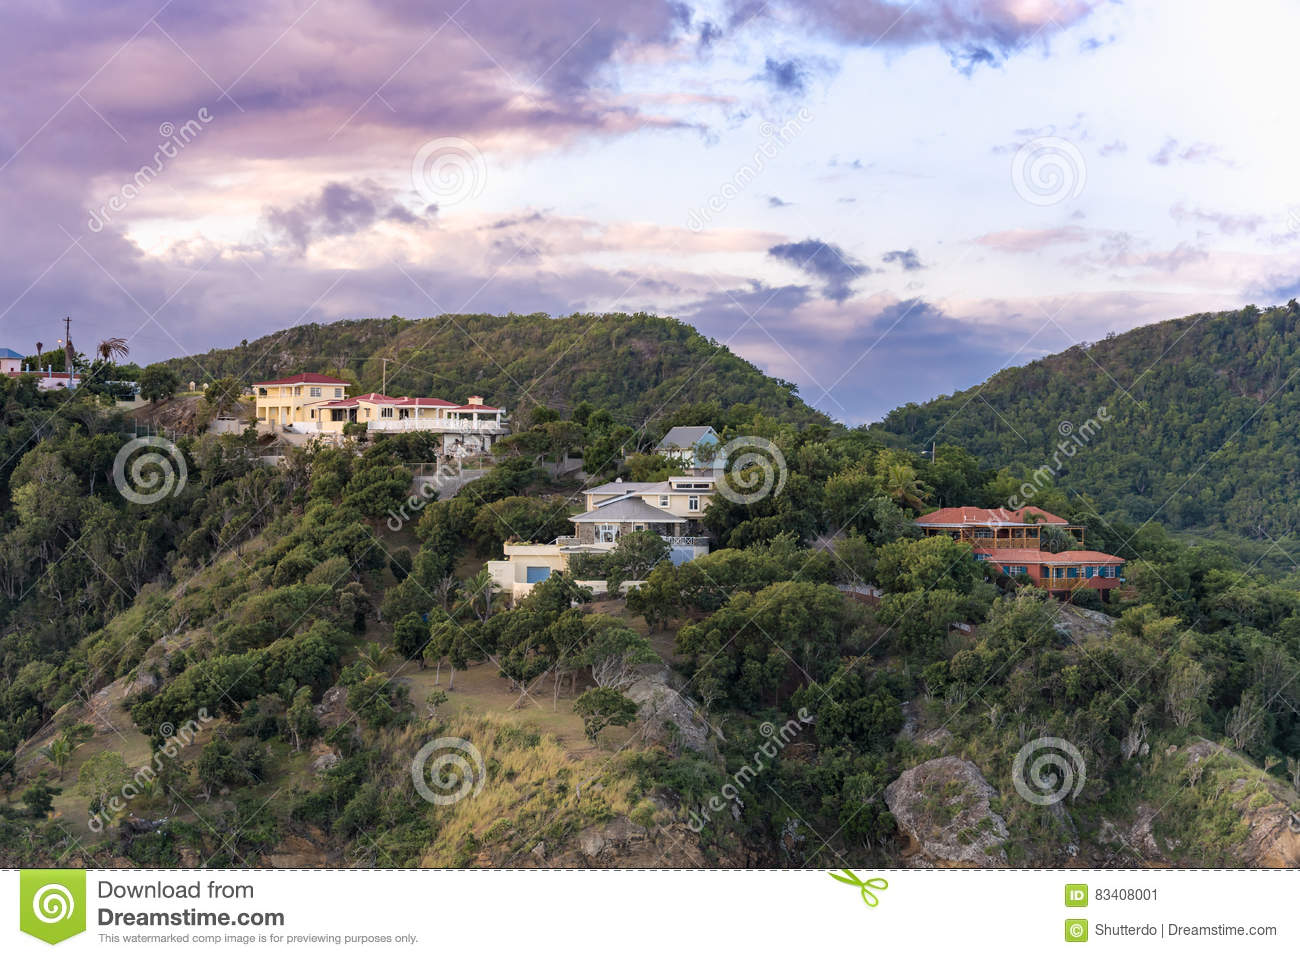 Hilltop houses on the island of Antigua